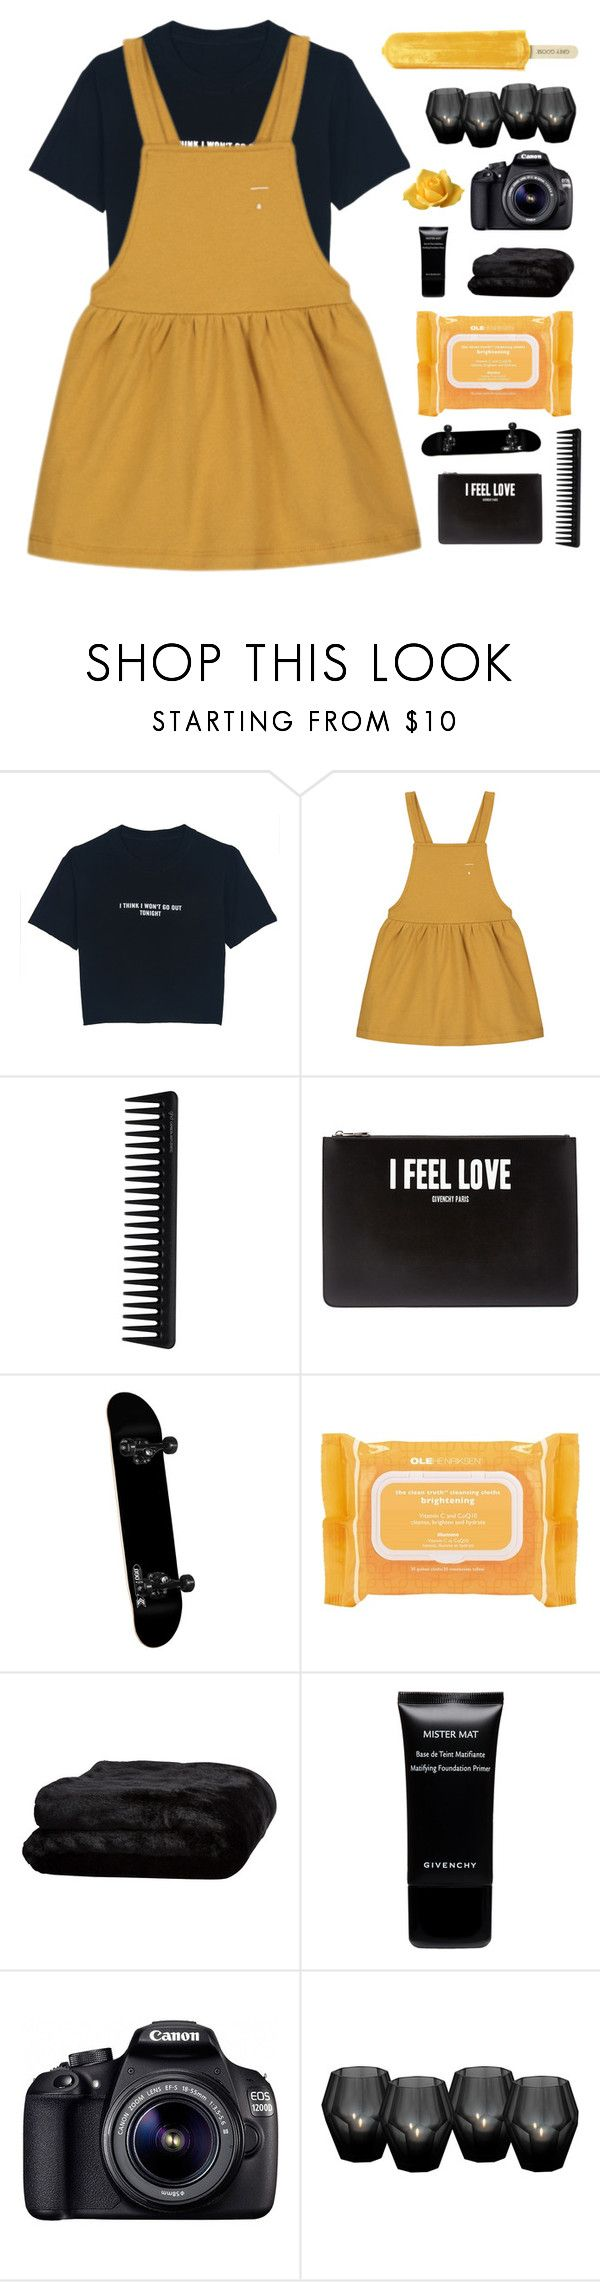 """""""YOU'RE MY WONDERWALL"""" by wintuhr ❤ liked on Polyvore featuring WithChic, Gray Label, GHD, Givenchy, Ole Henriksen, Olivier Desforges, Eos and Eichholtz"""